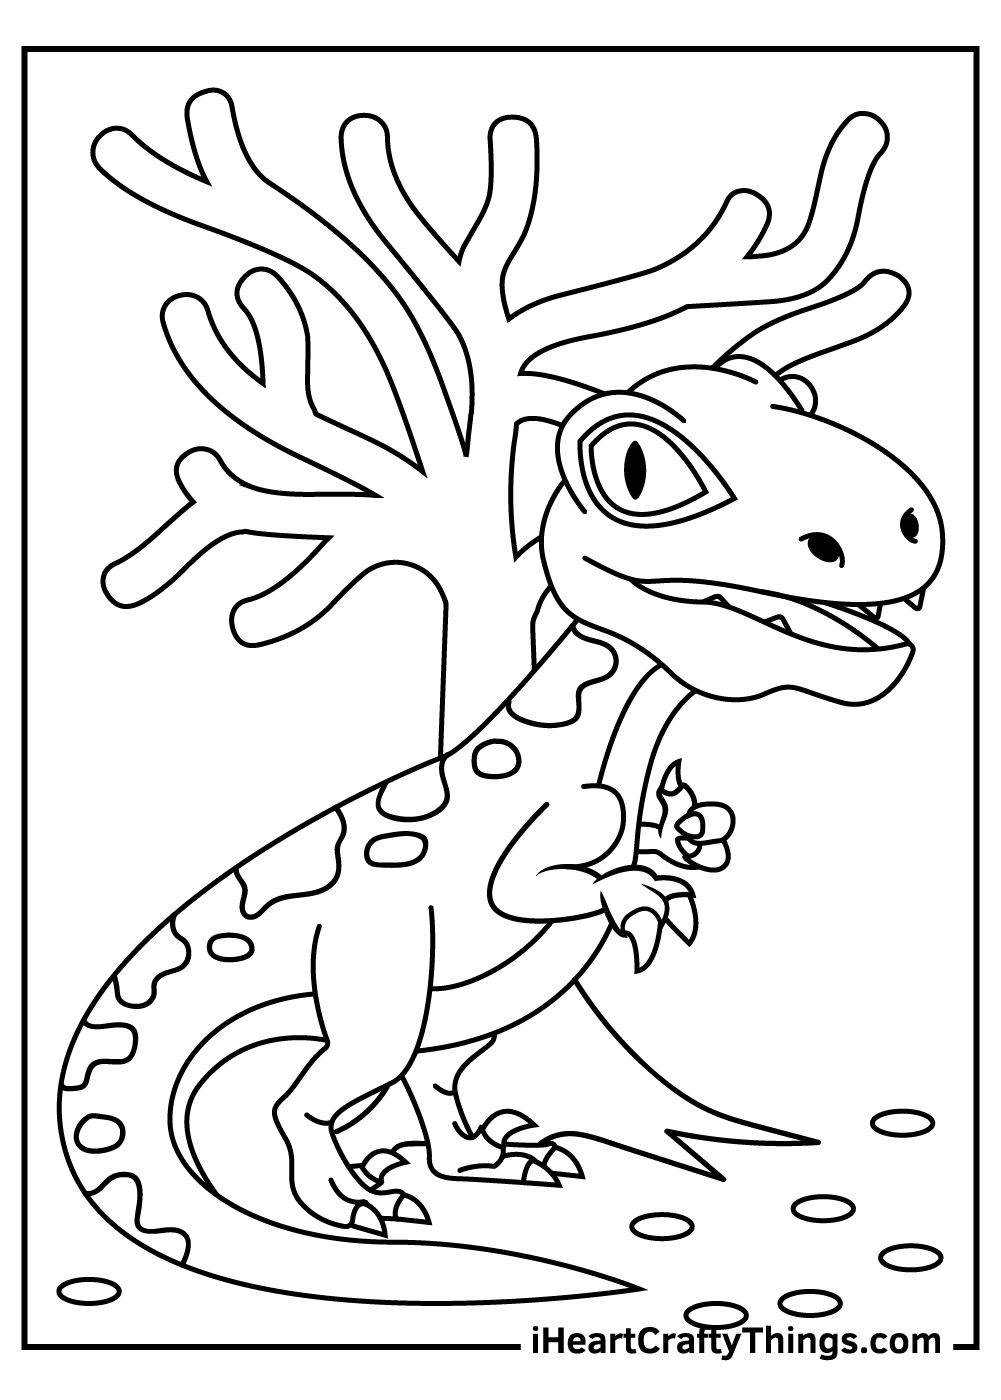 easy velociraptor coloring pages for kids